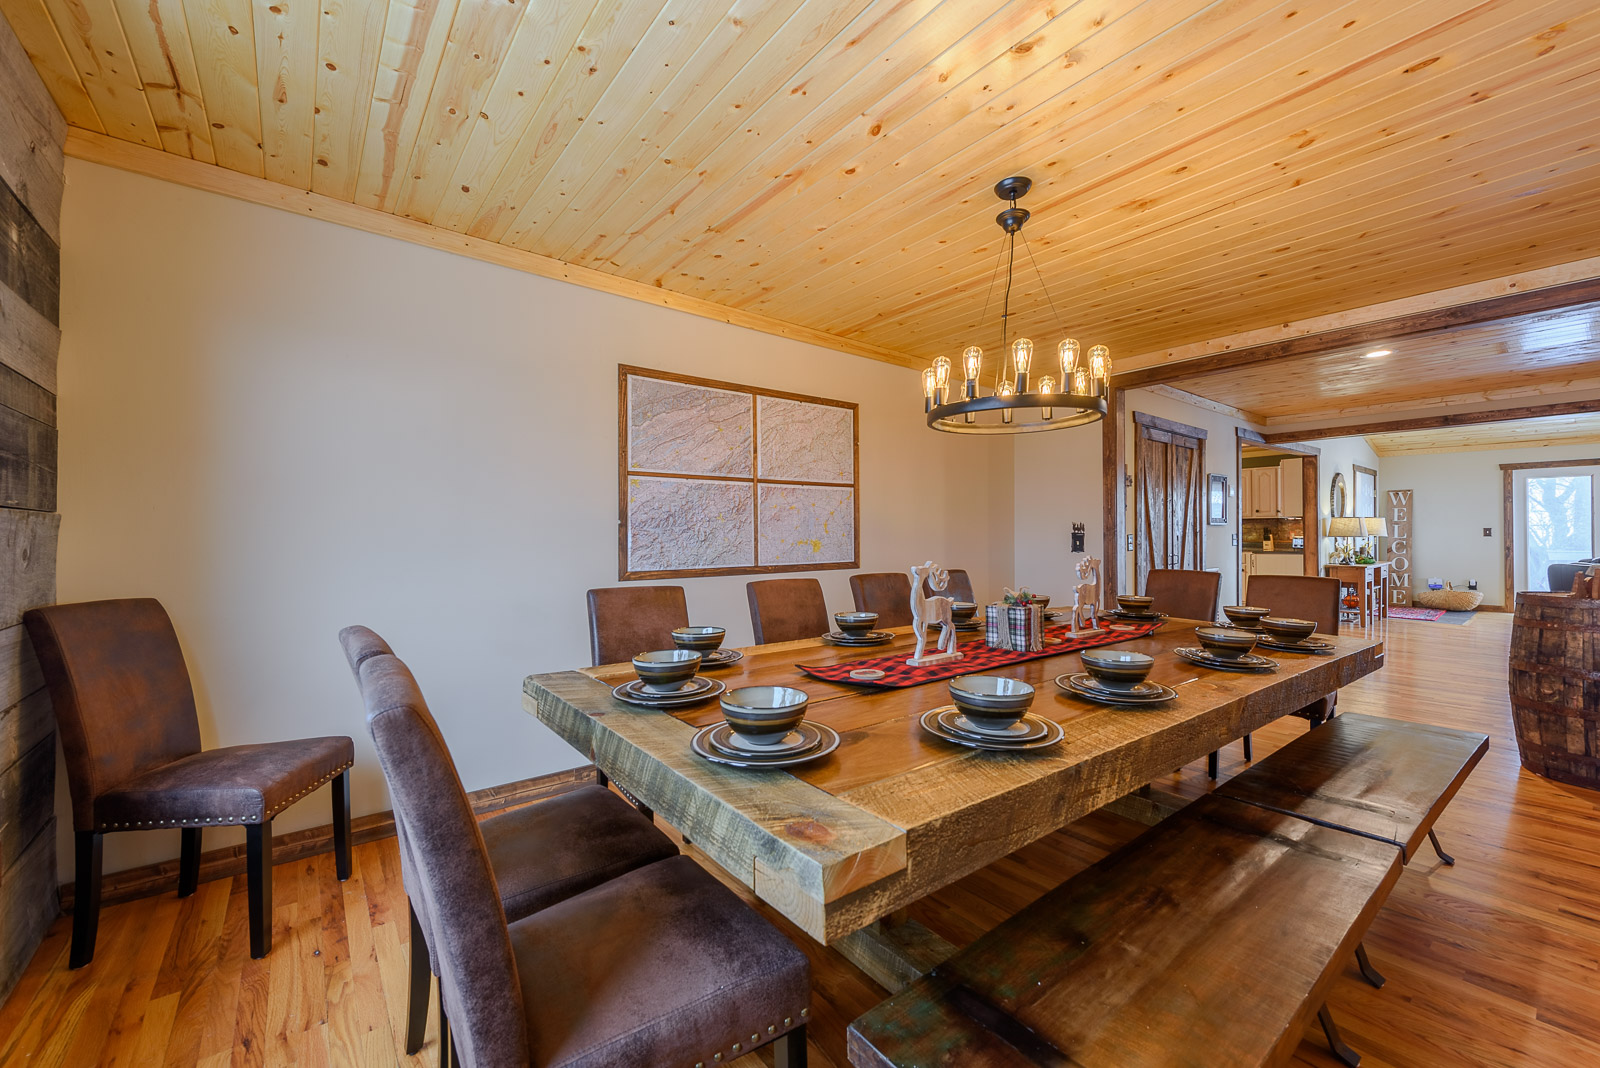 Huge Banquet-style Dining Table seats up to 16, Custom-Made for this room